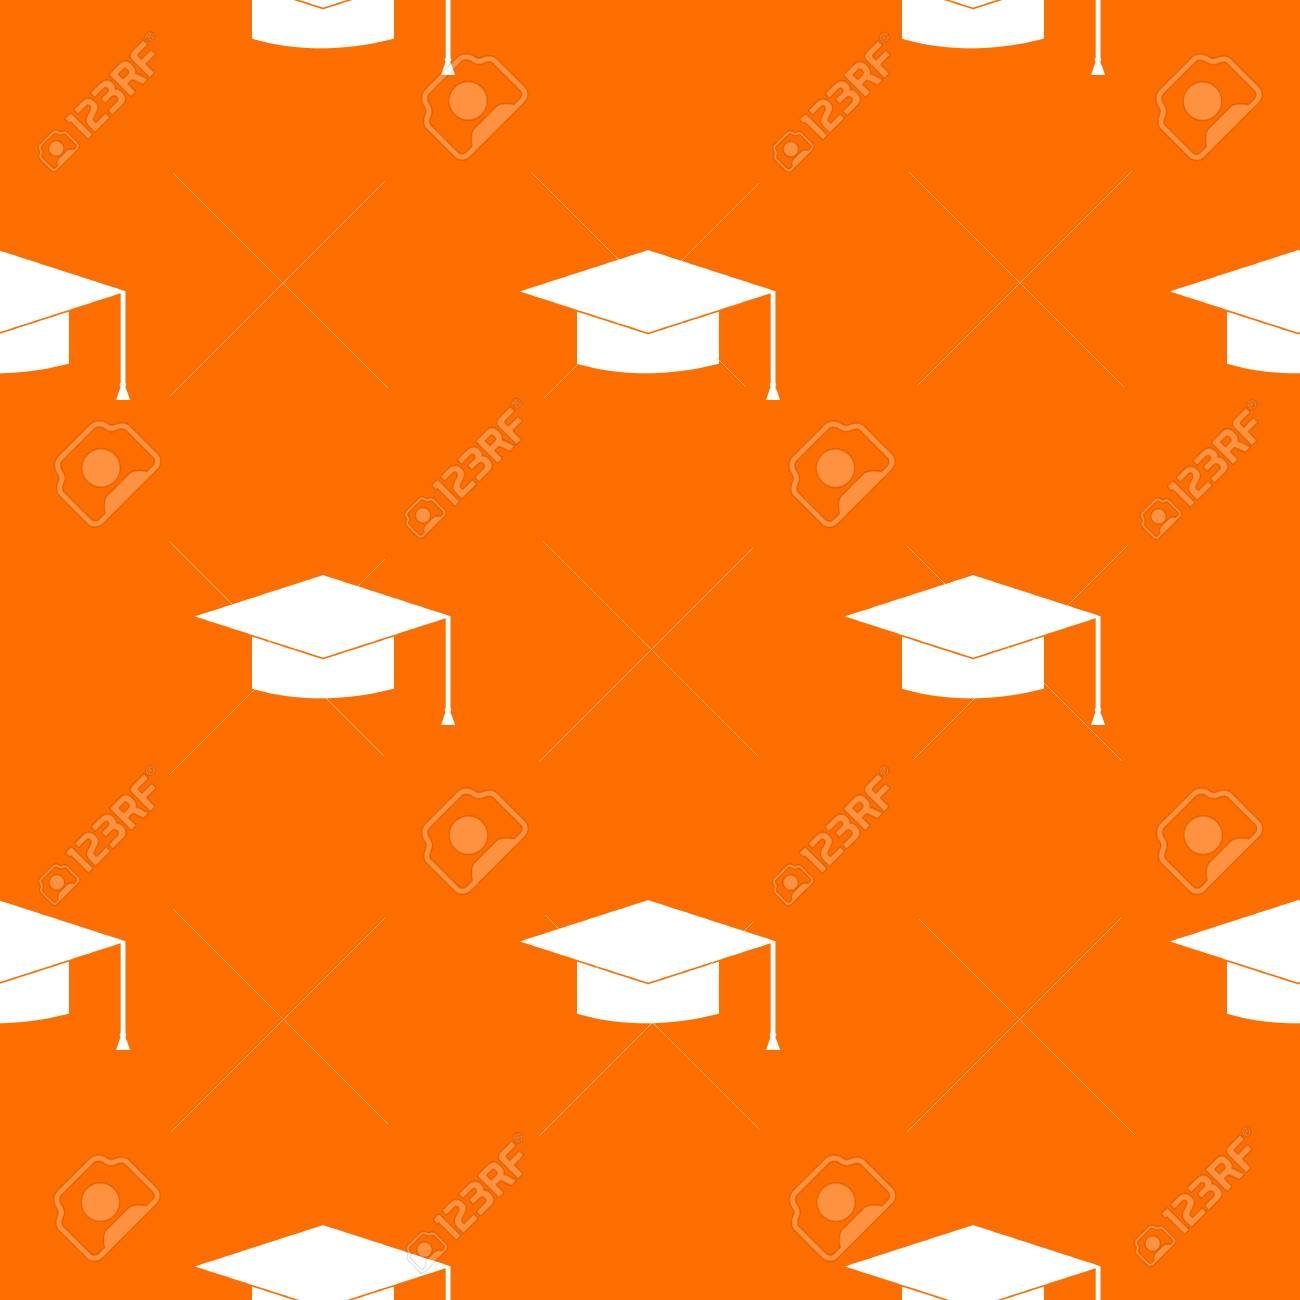 graduation cap pattern repeat seamless in orange color for any